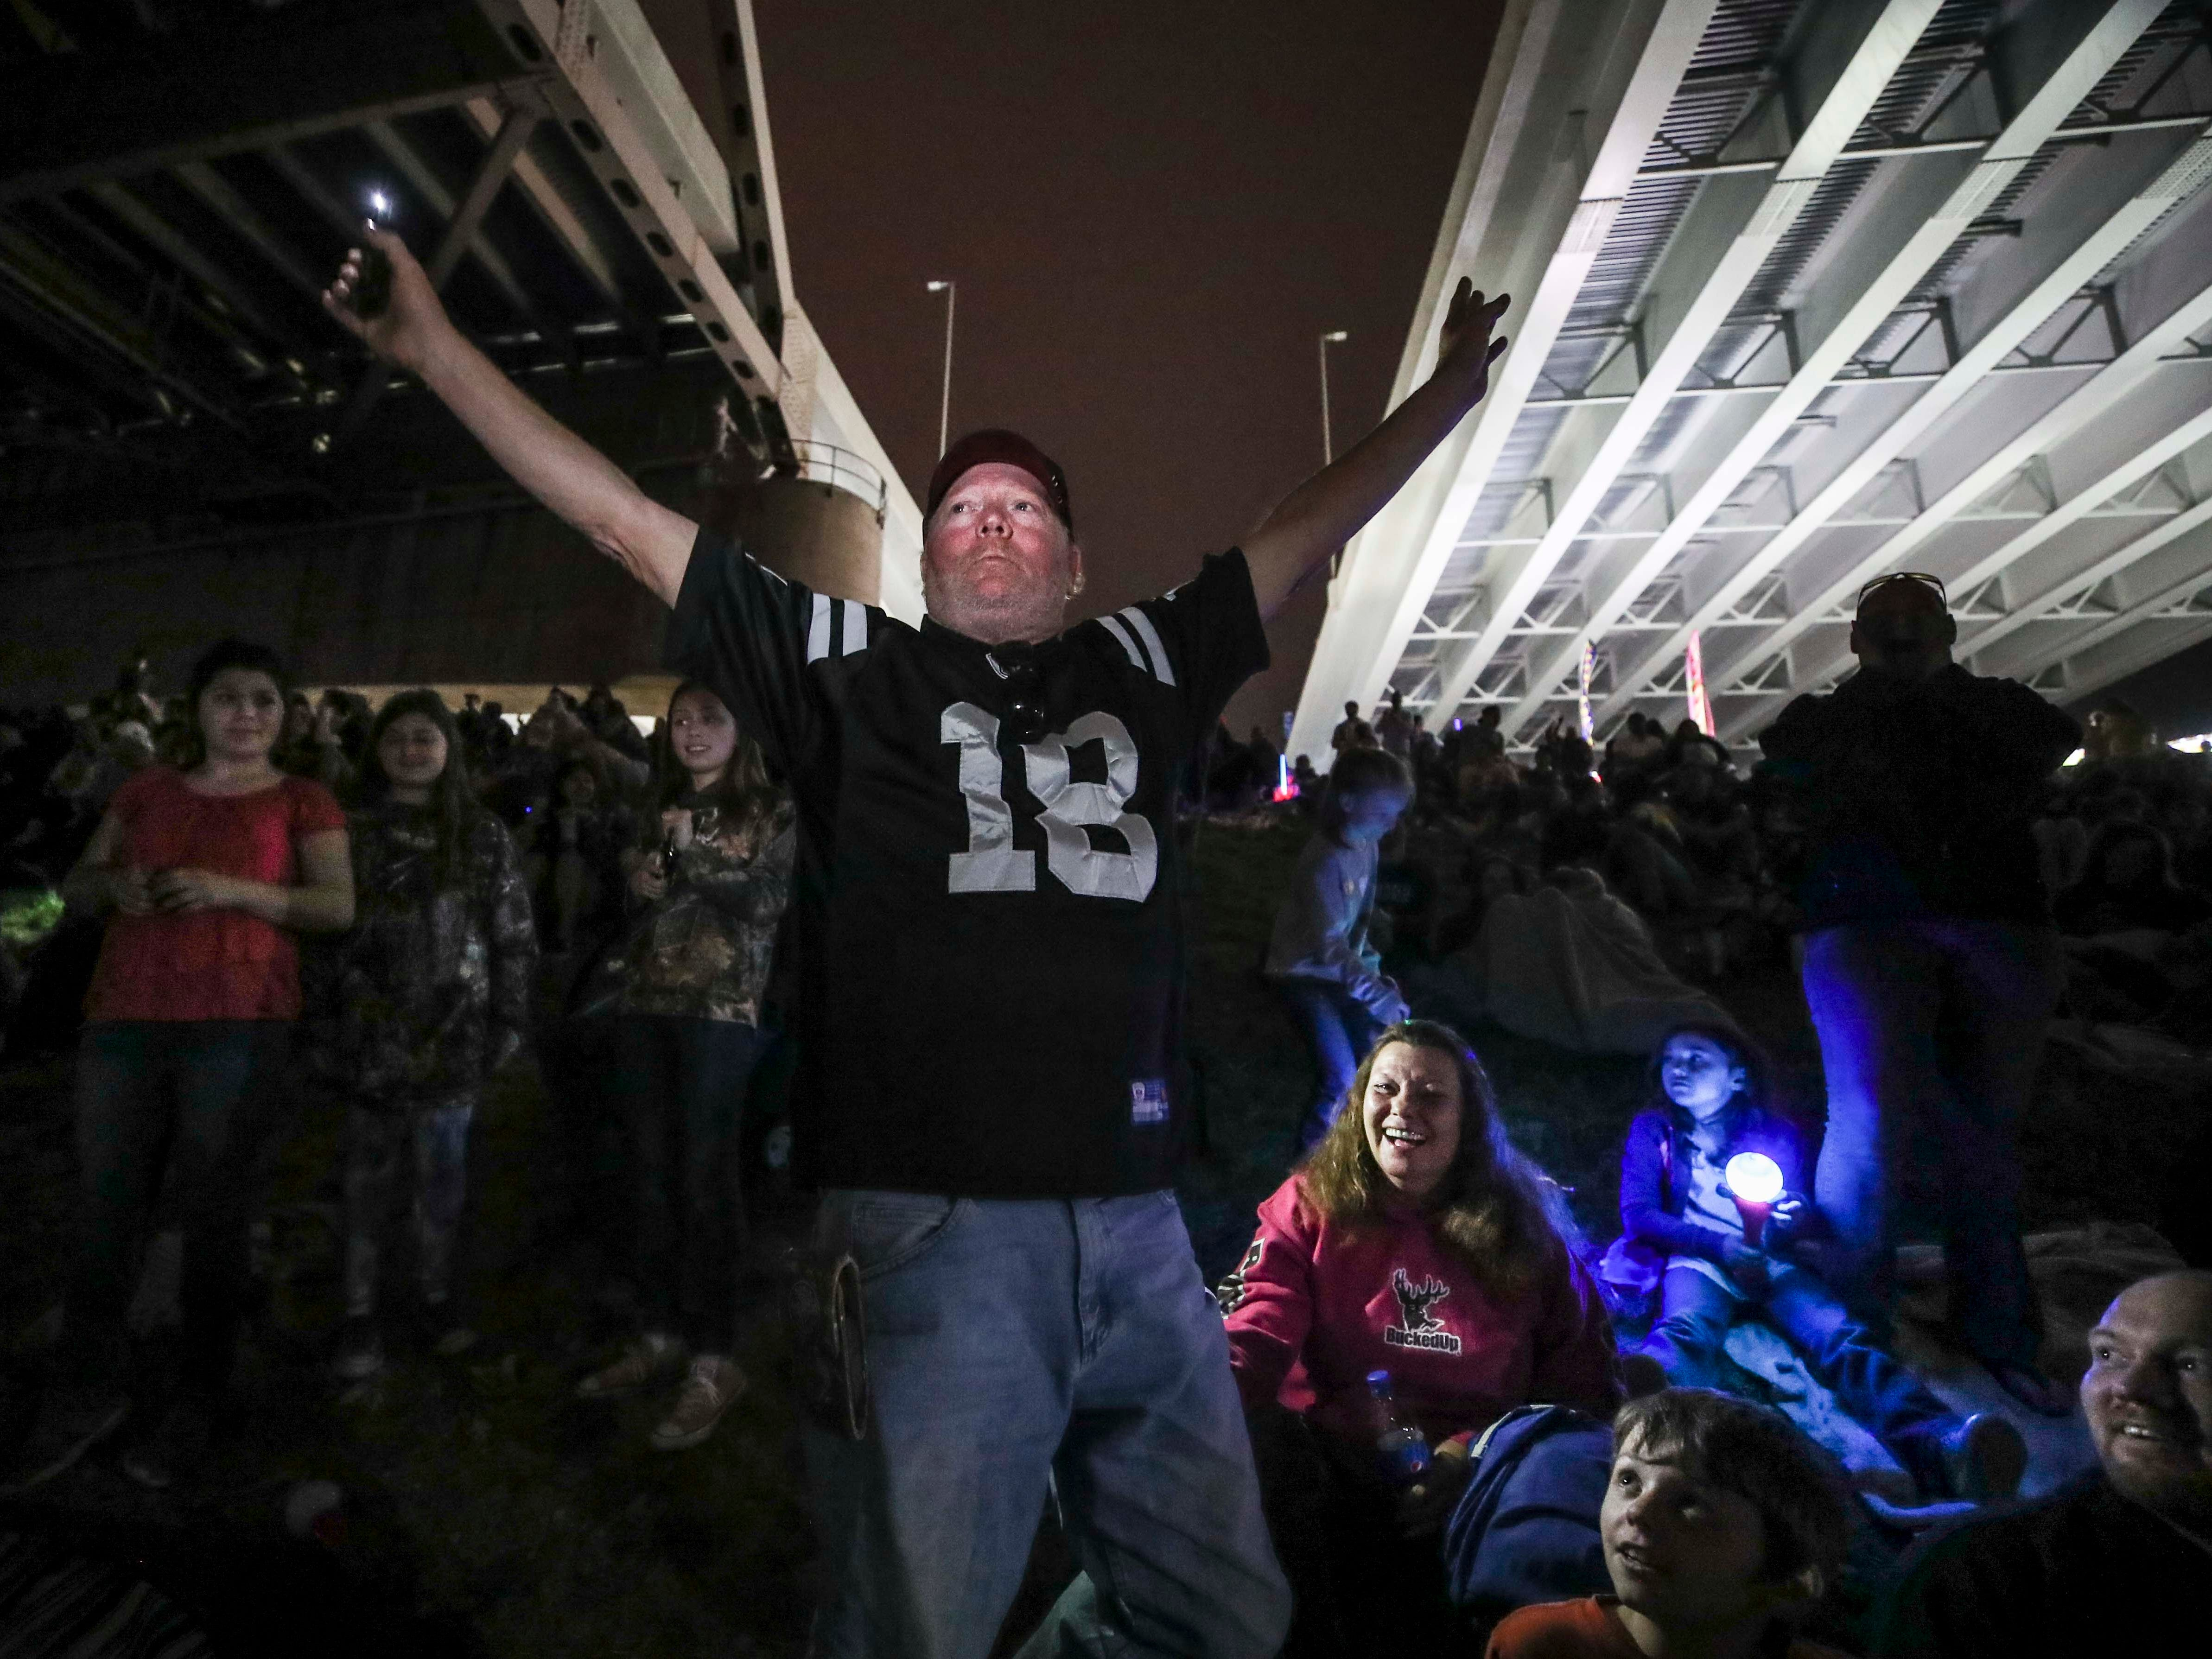 Tom Mulvaney of Lexington, Ind. yells to the crowd to light up their phones before the fireworks in Jeffersonville during 2019 Thunder Over Louisville. 'Let's show Kentucky what Hoosiers got,' he yelled to a roar from the crowd. April 13, 2019